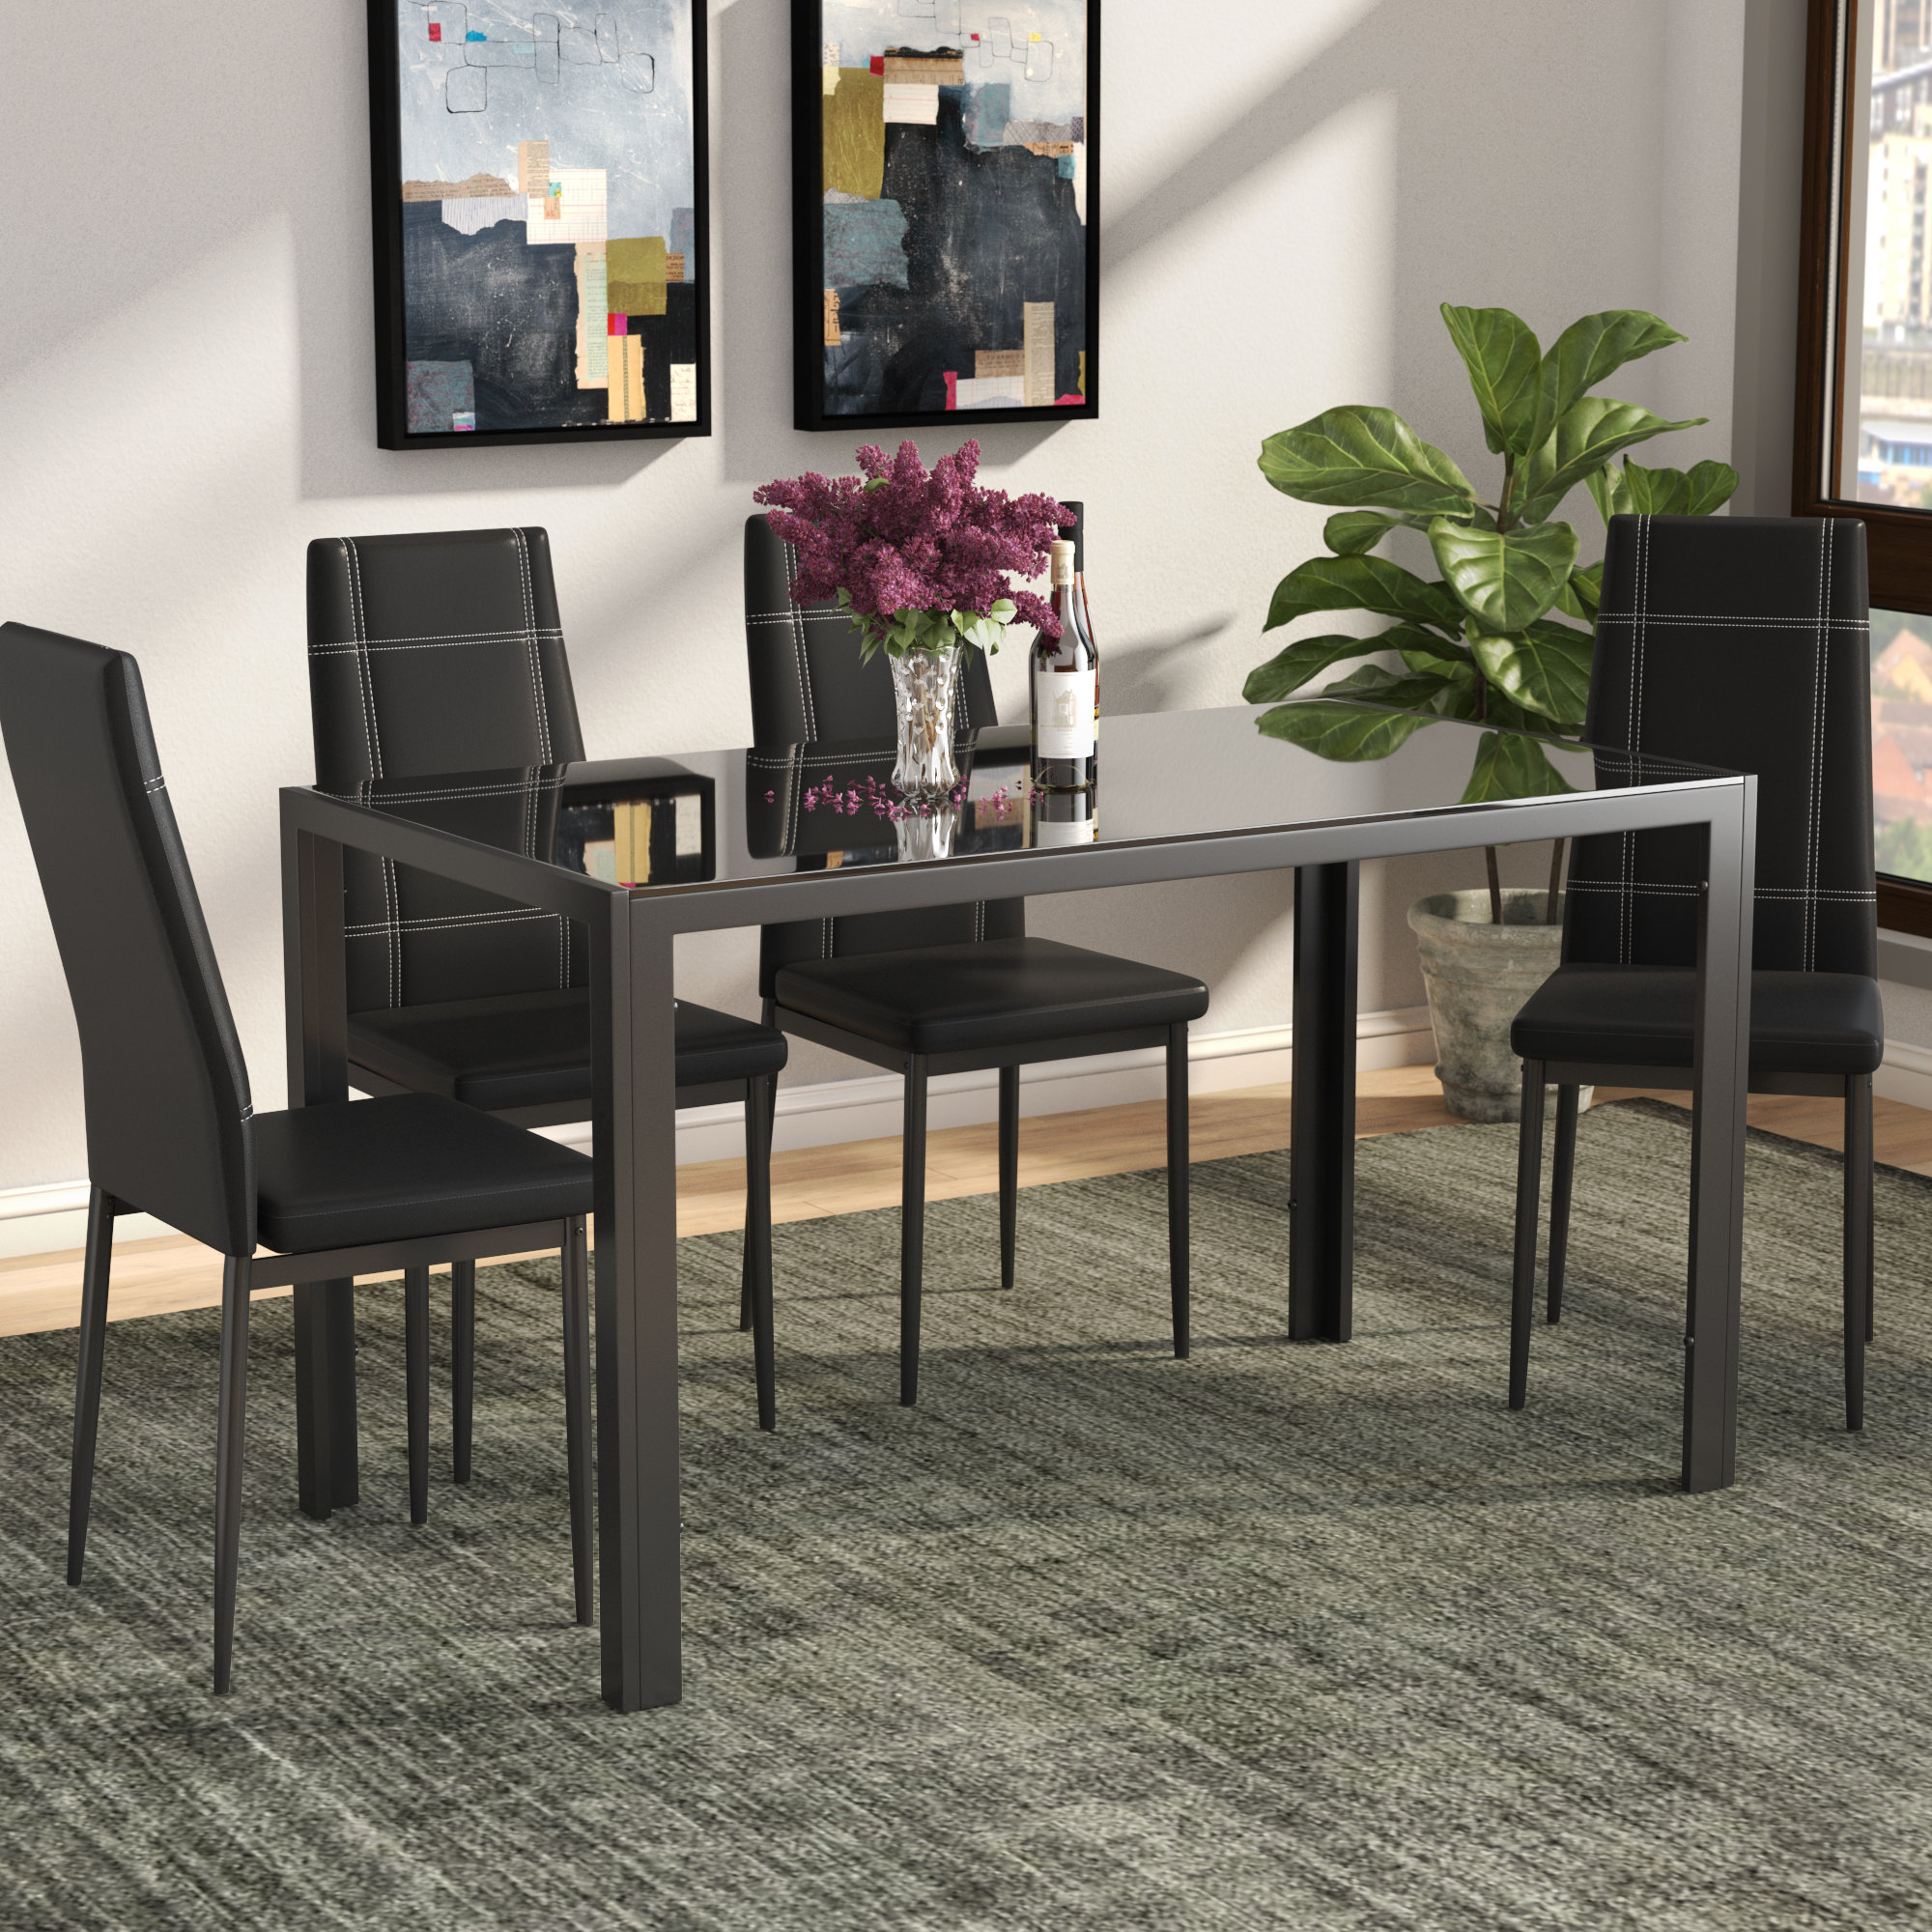 Best And Newest Maynard 5 Piece Dining Set Inside Maynard 5 Piece Dining Sets (Gallery 1 of 20)